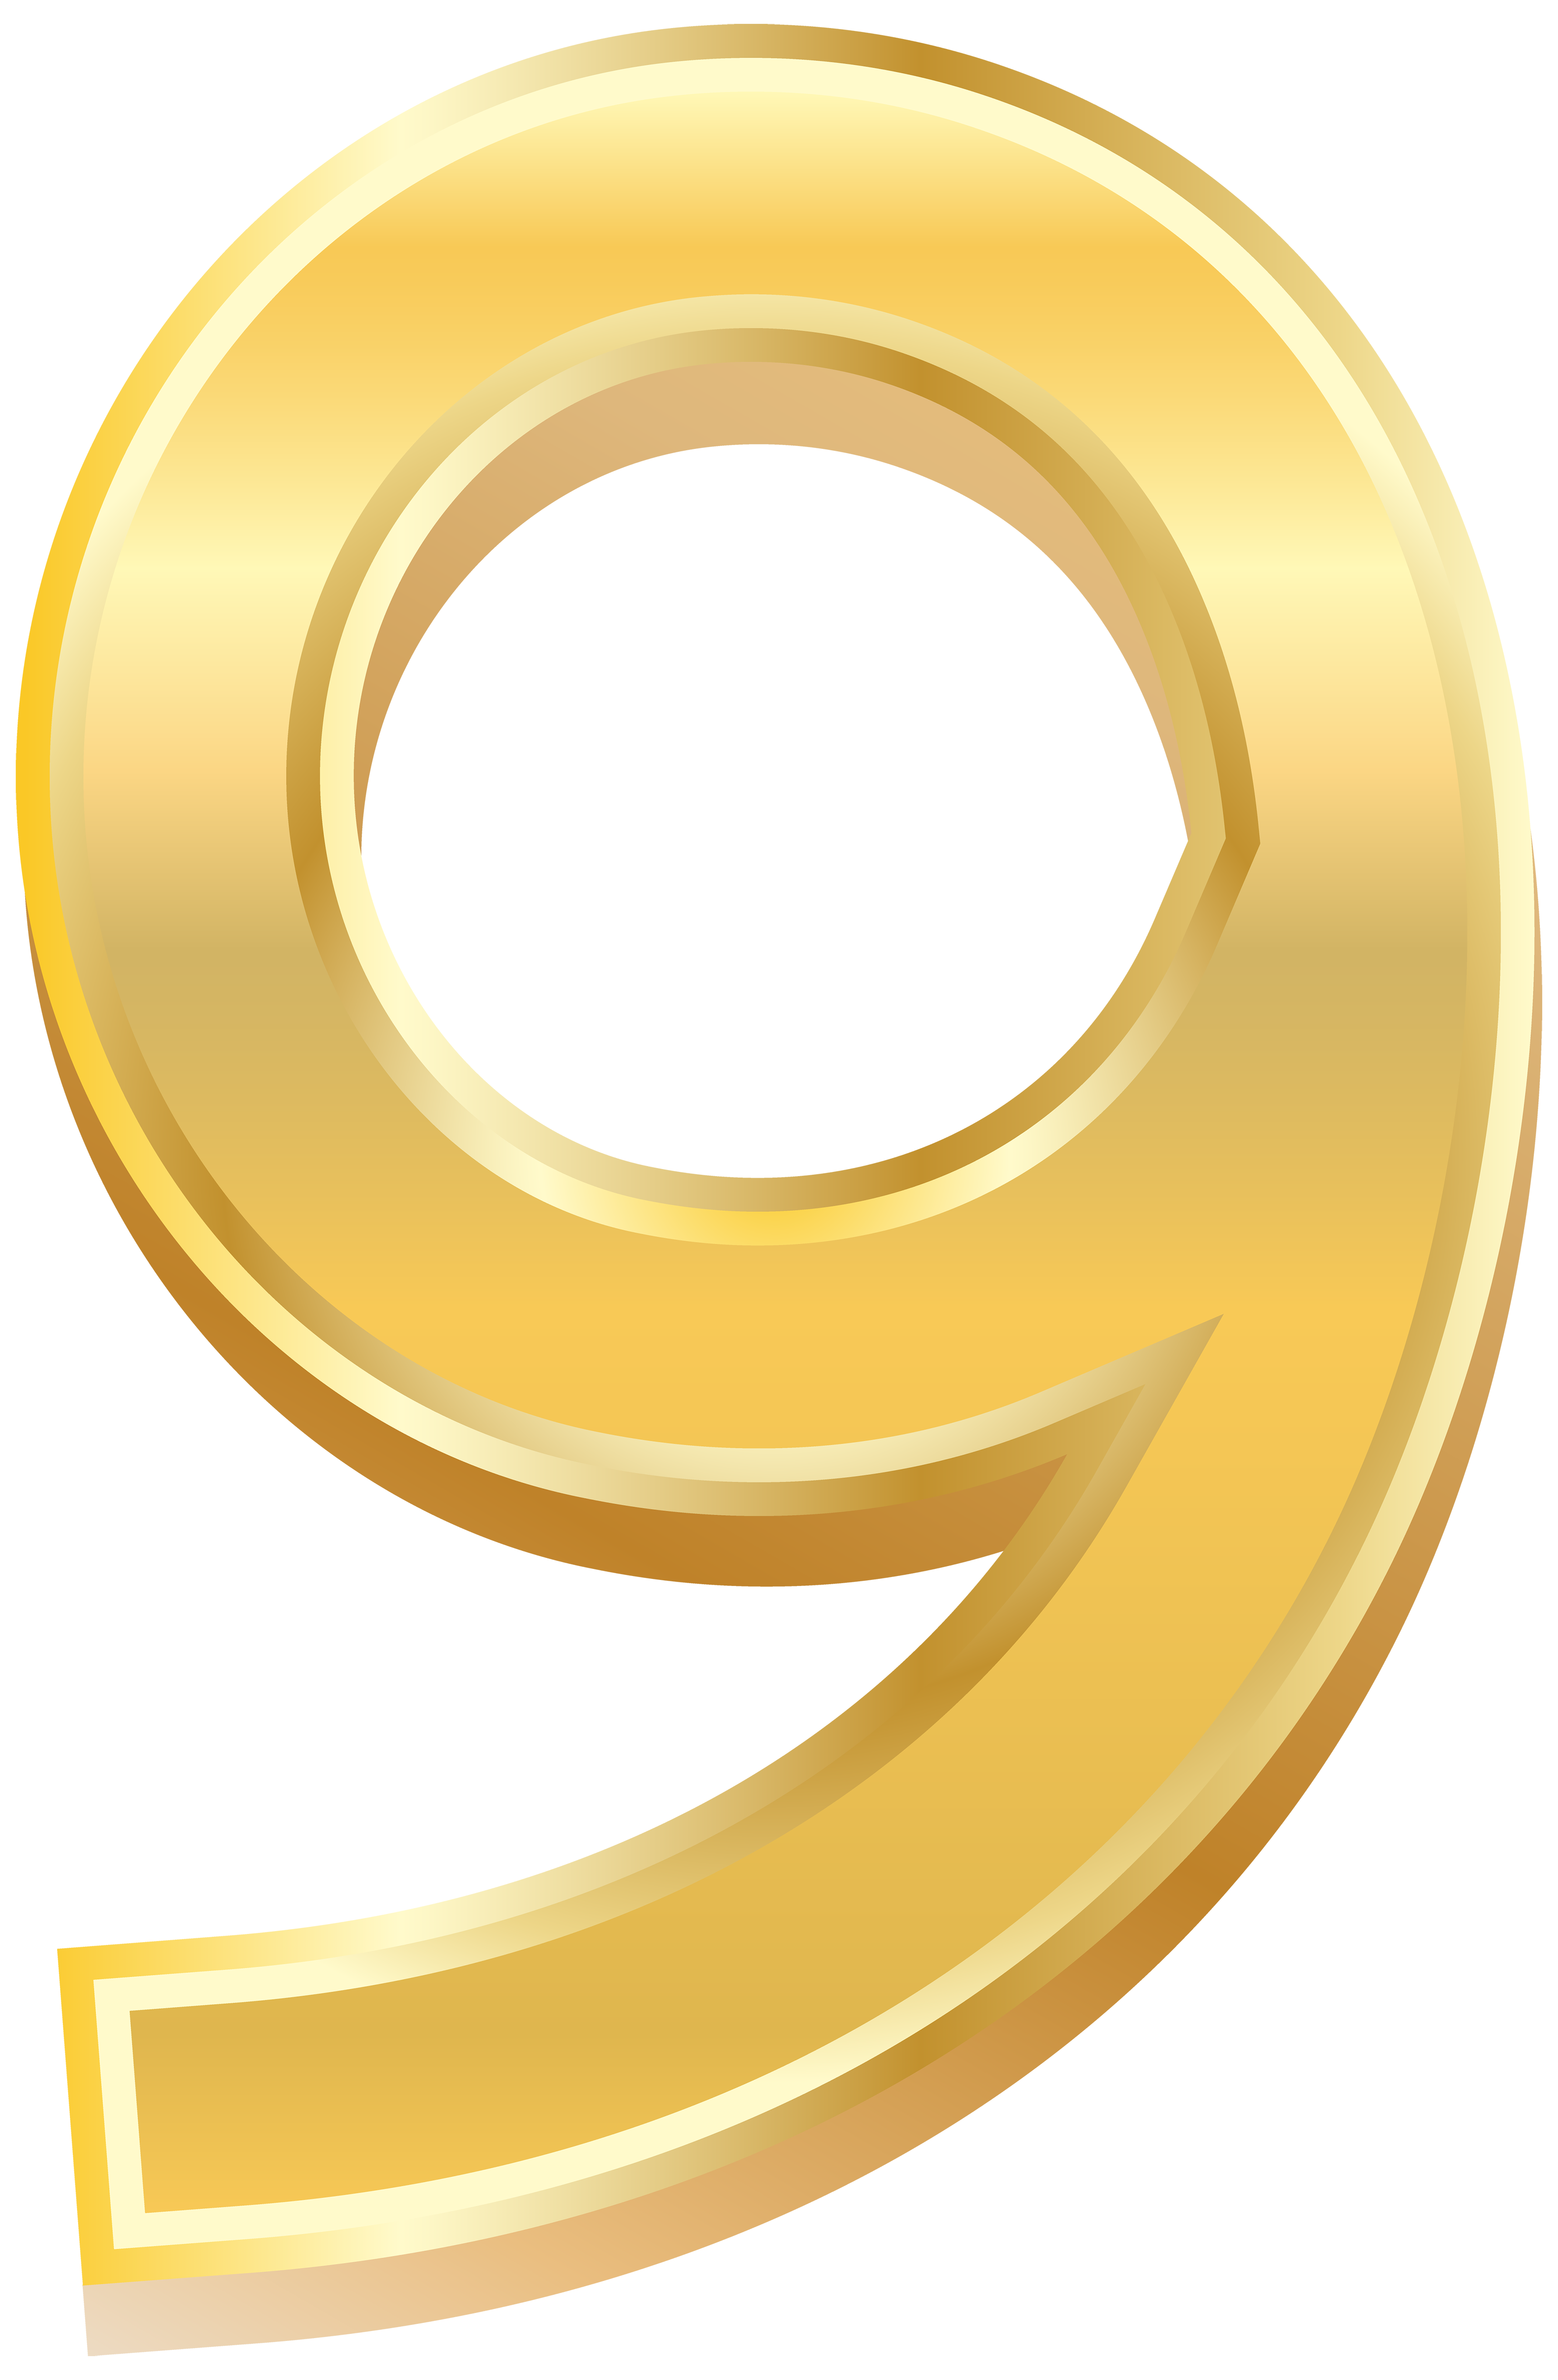 6 clipart gold number. Style images gallery for